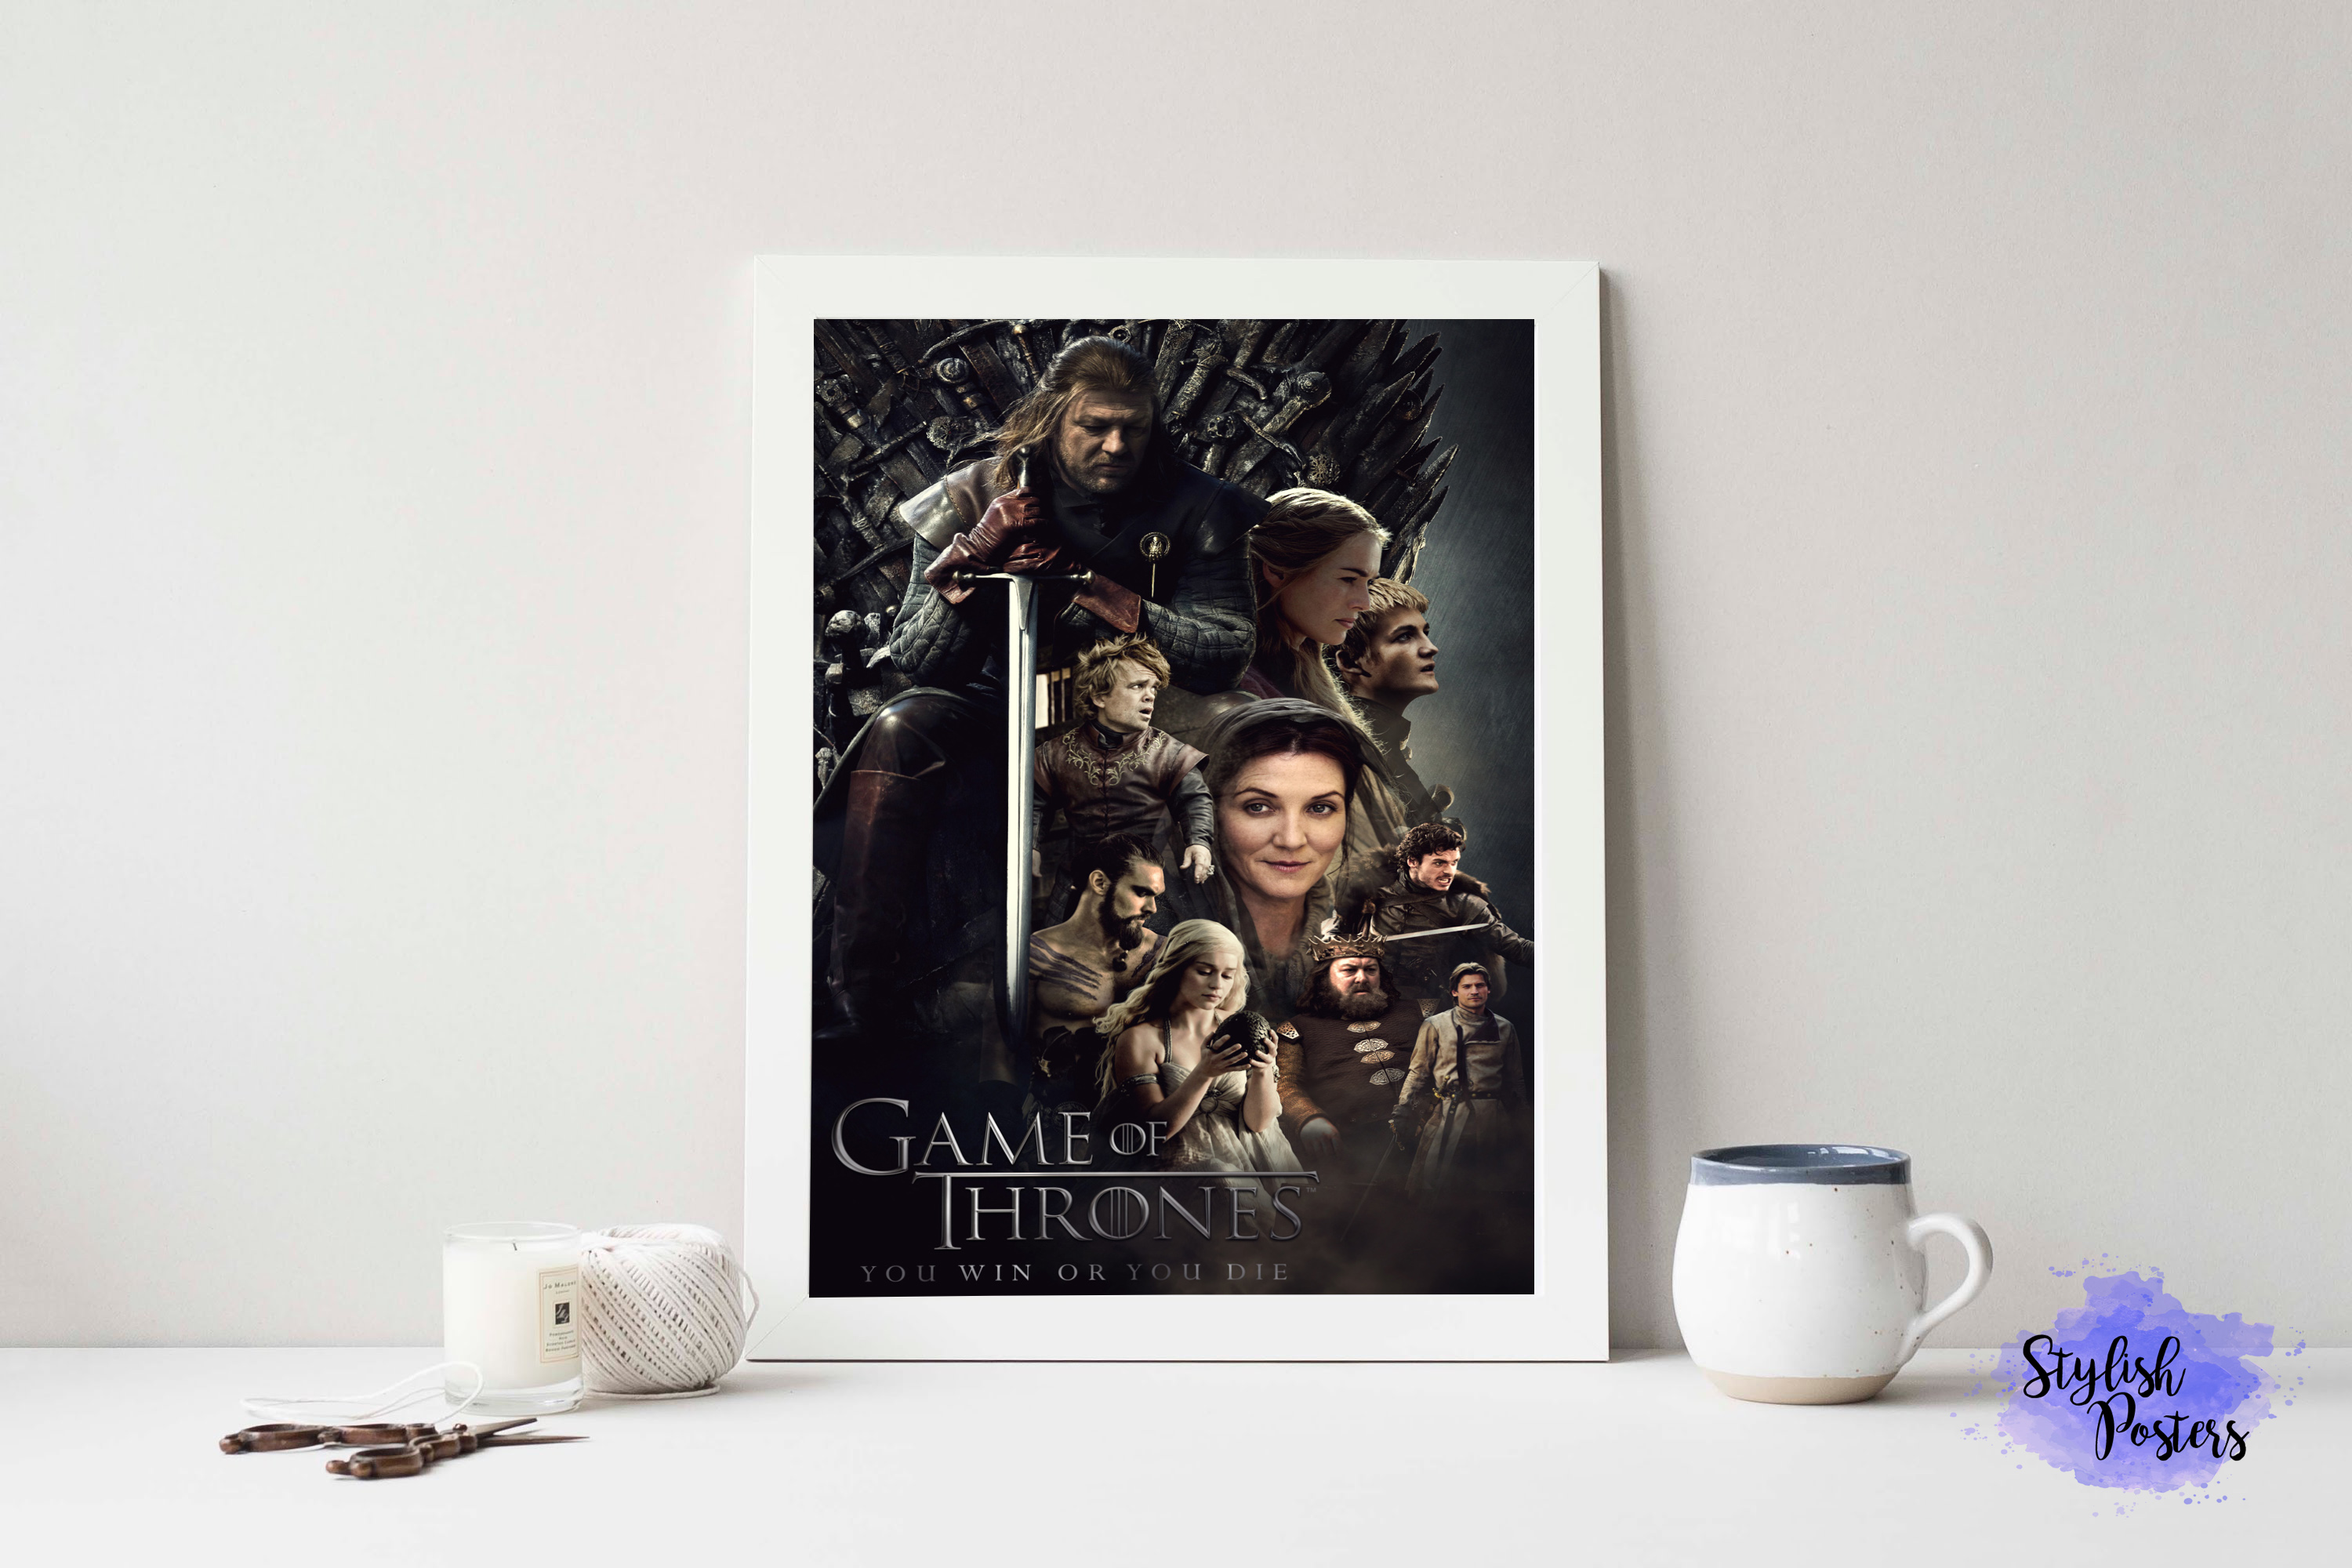 Pôster Game Of Thrones | Tamanho A4 no Elo7 | Stylish Posters (AF427D)